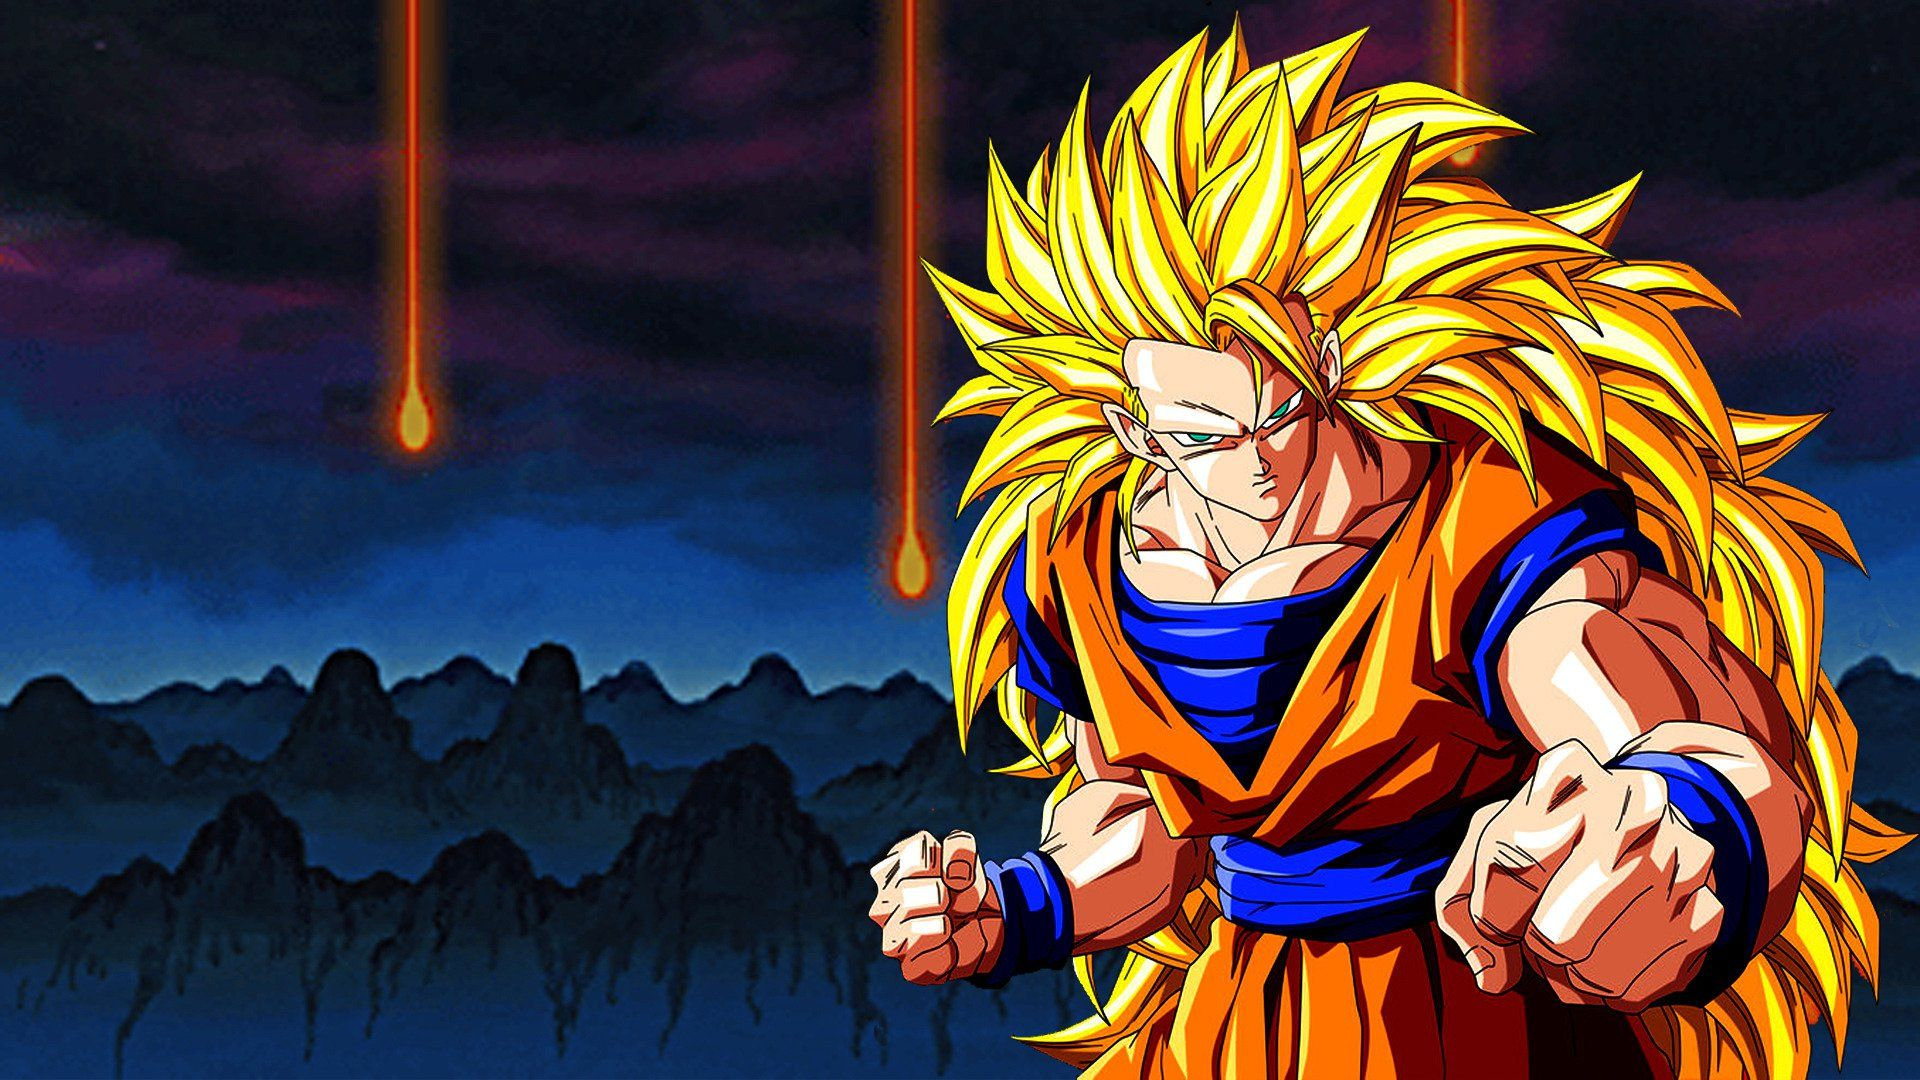 Fondos De Pantalla Hd Gratis Taringa Dragon Ball Wallpapers Goku Wallpaper Z Wallpaper